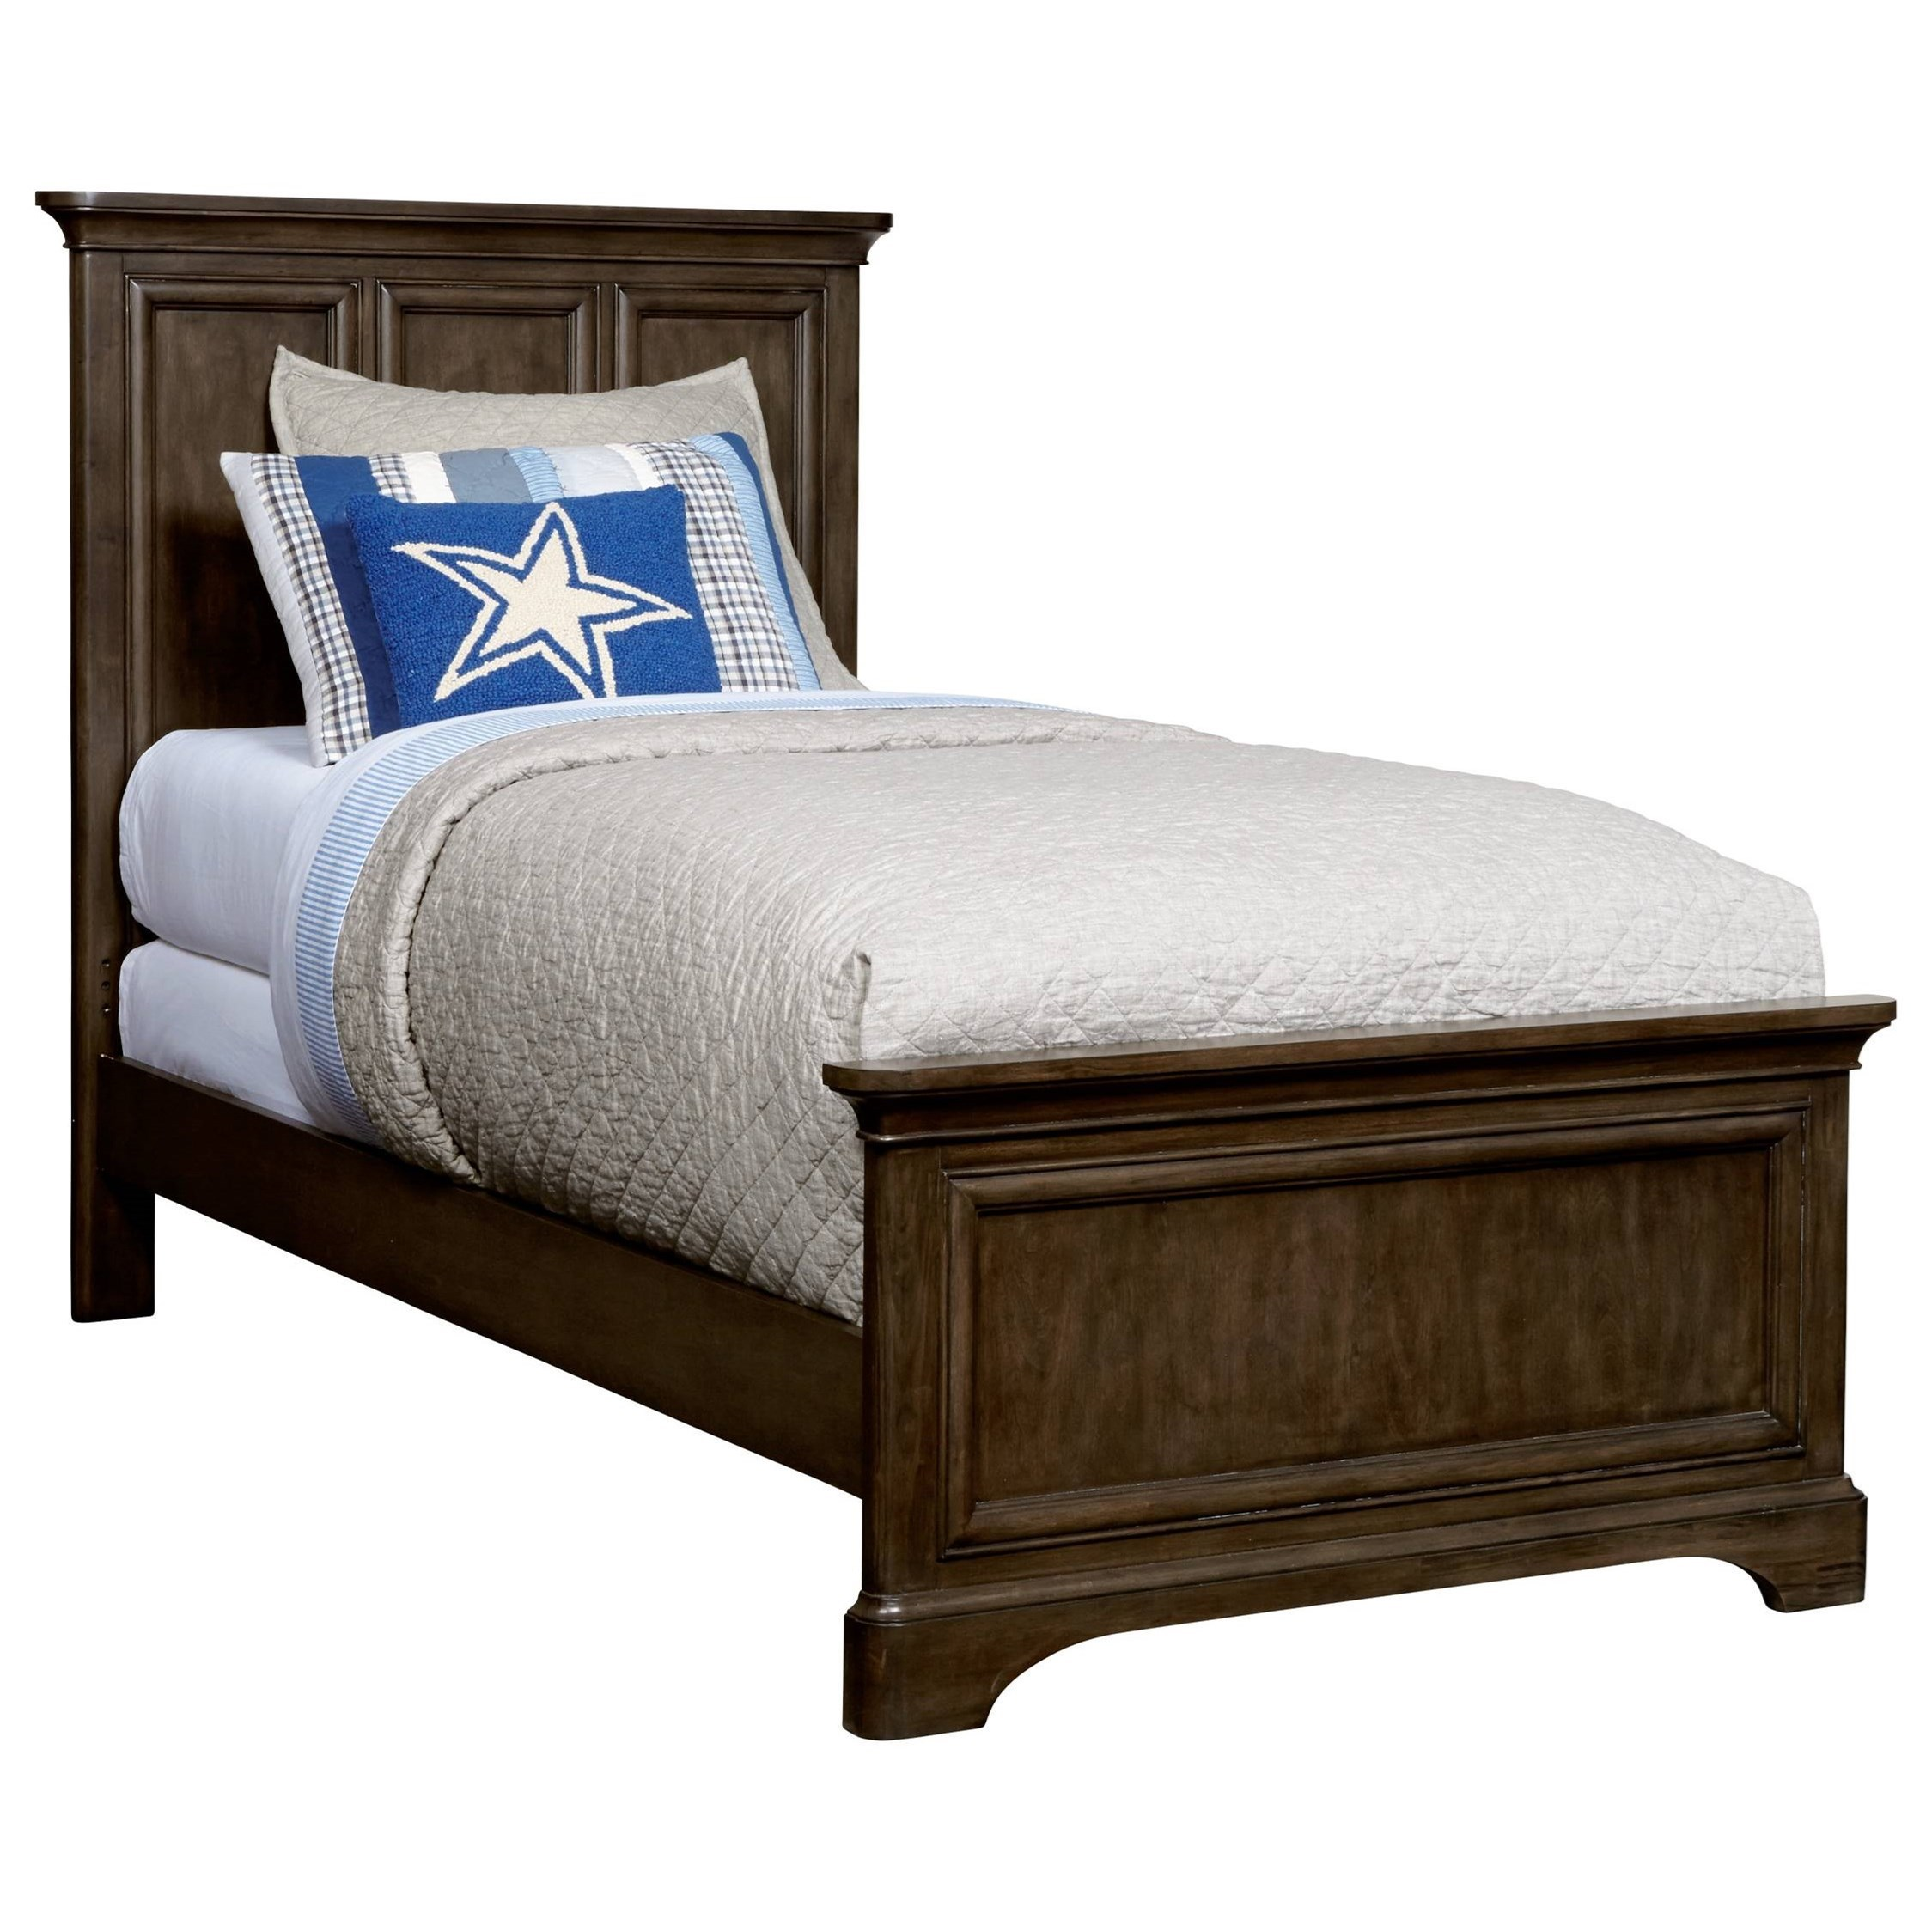 Stone & Leigh Furniture Chelsea Square Twin Panel Bed - Item Number: 584-13-35